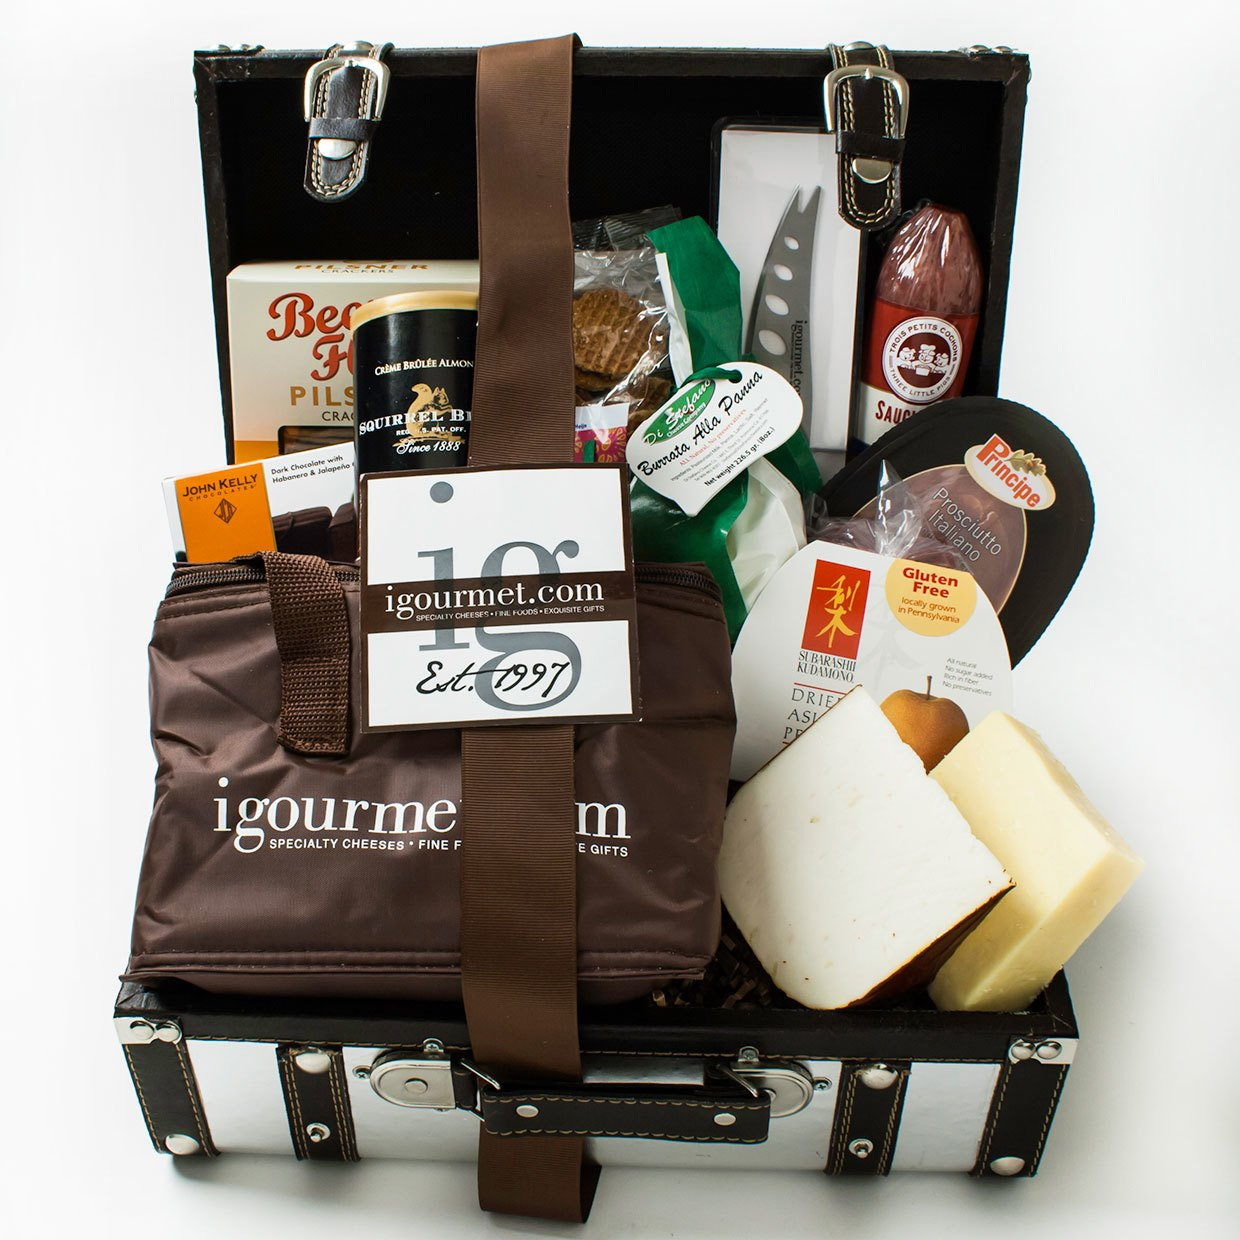 KaBloom Gift Basket Collection: The Platinum Foodie Gift Case of Gourmet Cheese, Sausage, Crackers, Chocolate, Nuts, Fruit and Cheese Knife by KaBloom (Image #1)